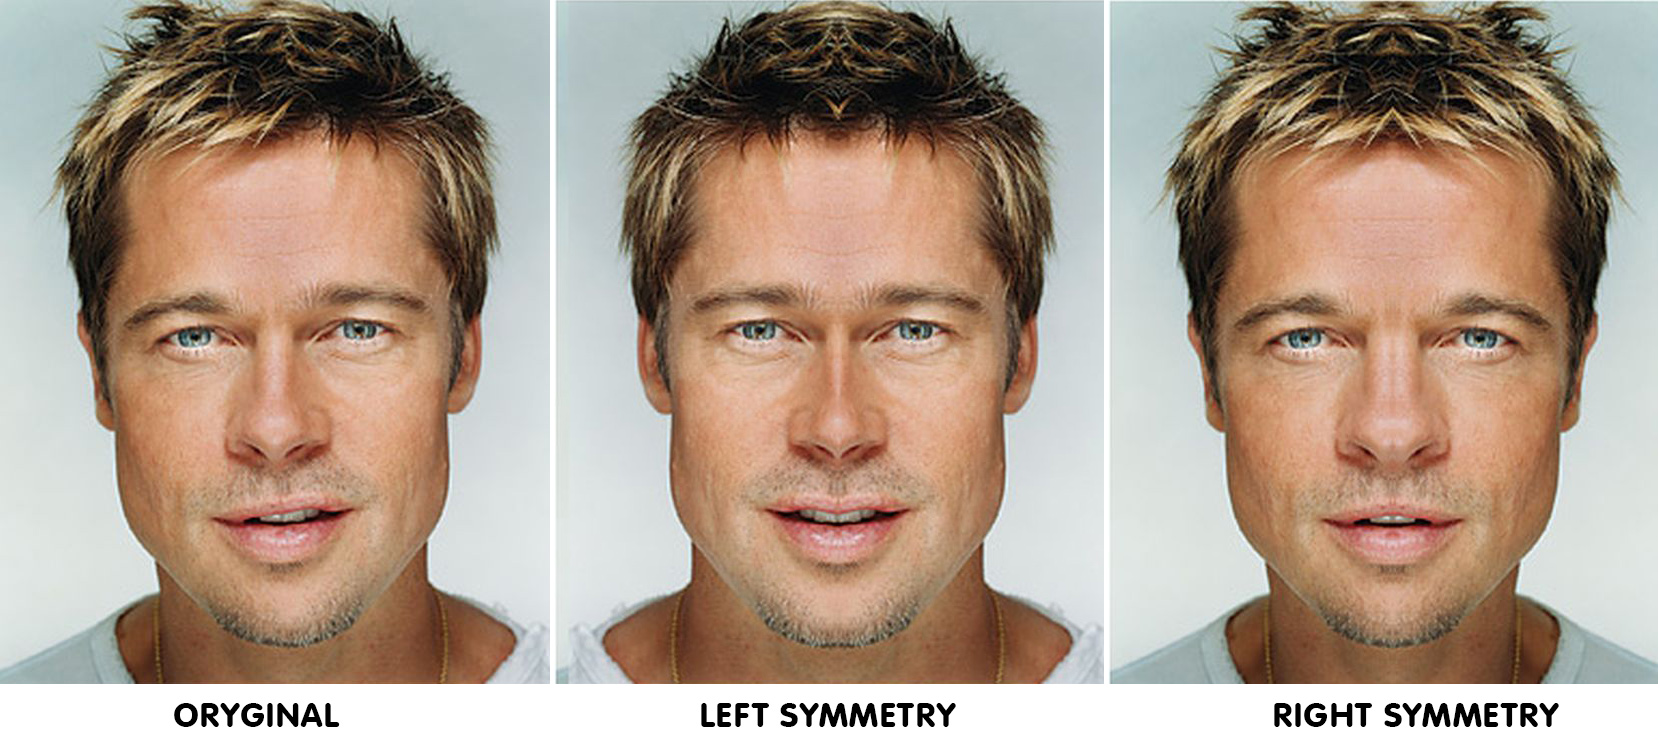 faces-photoshopped-to-reveal-perfect-symmetrical-features-22424